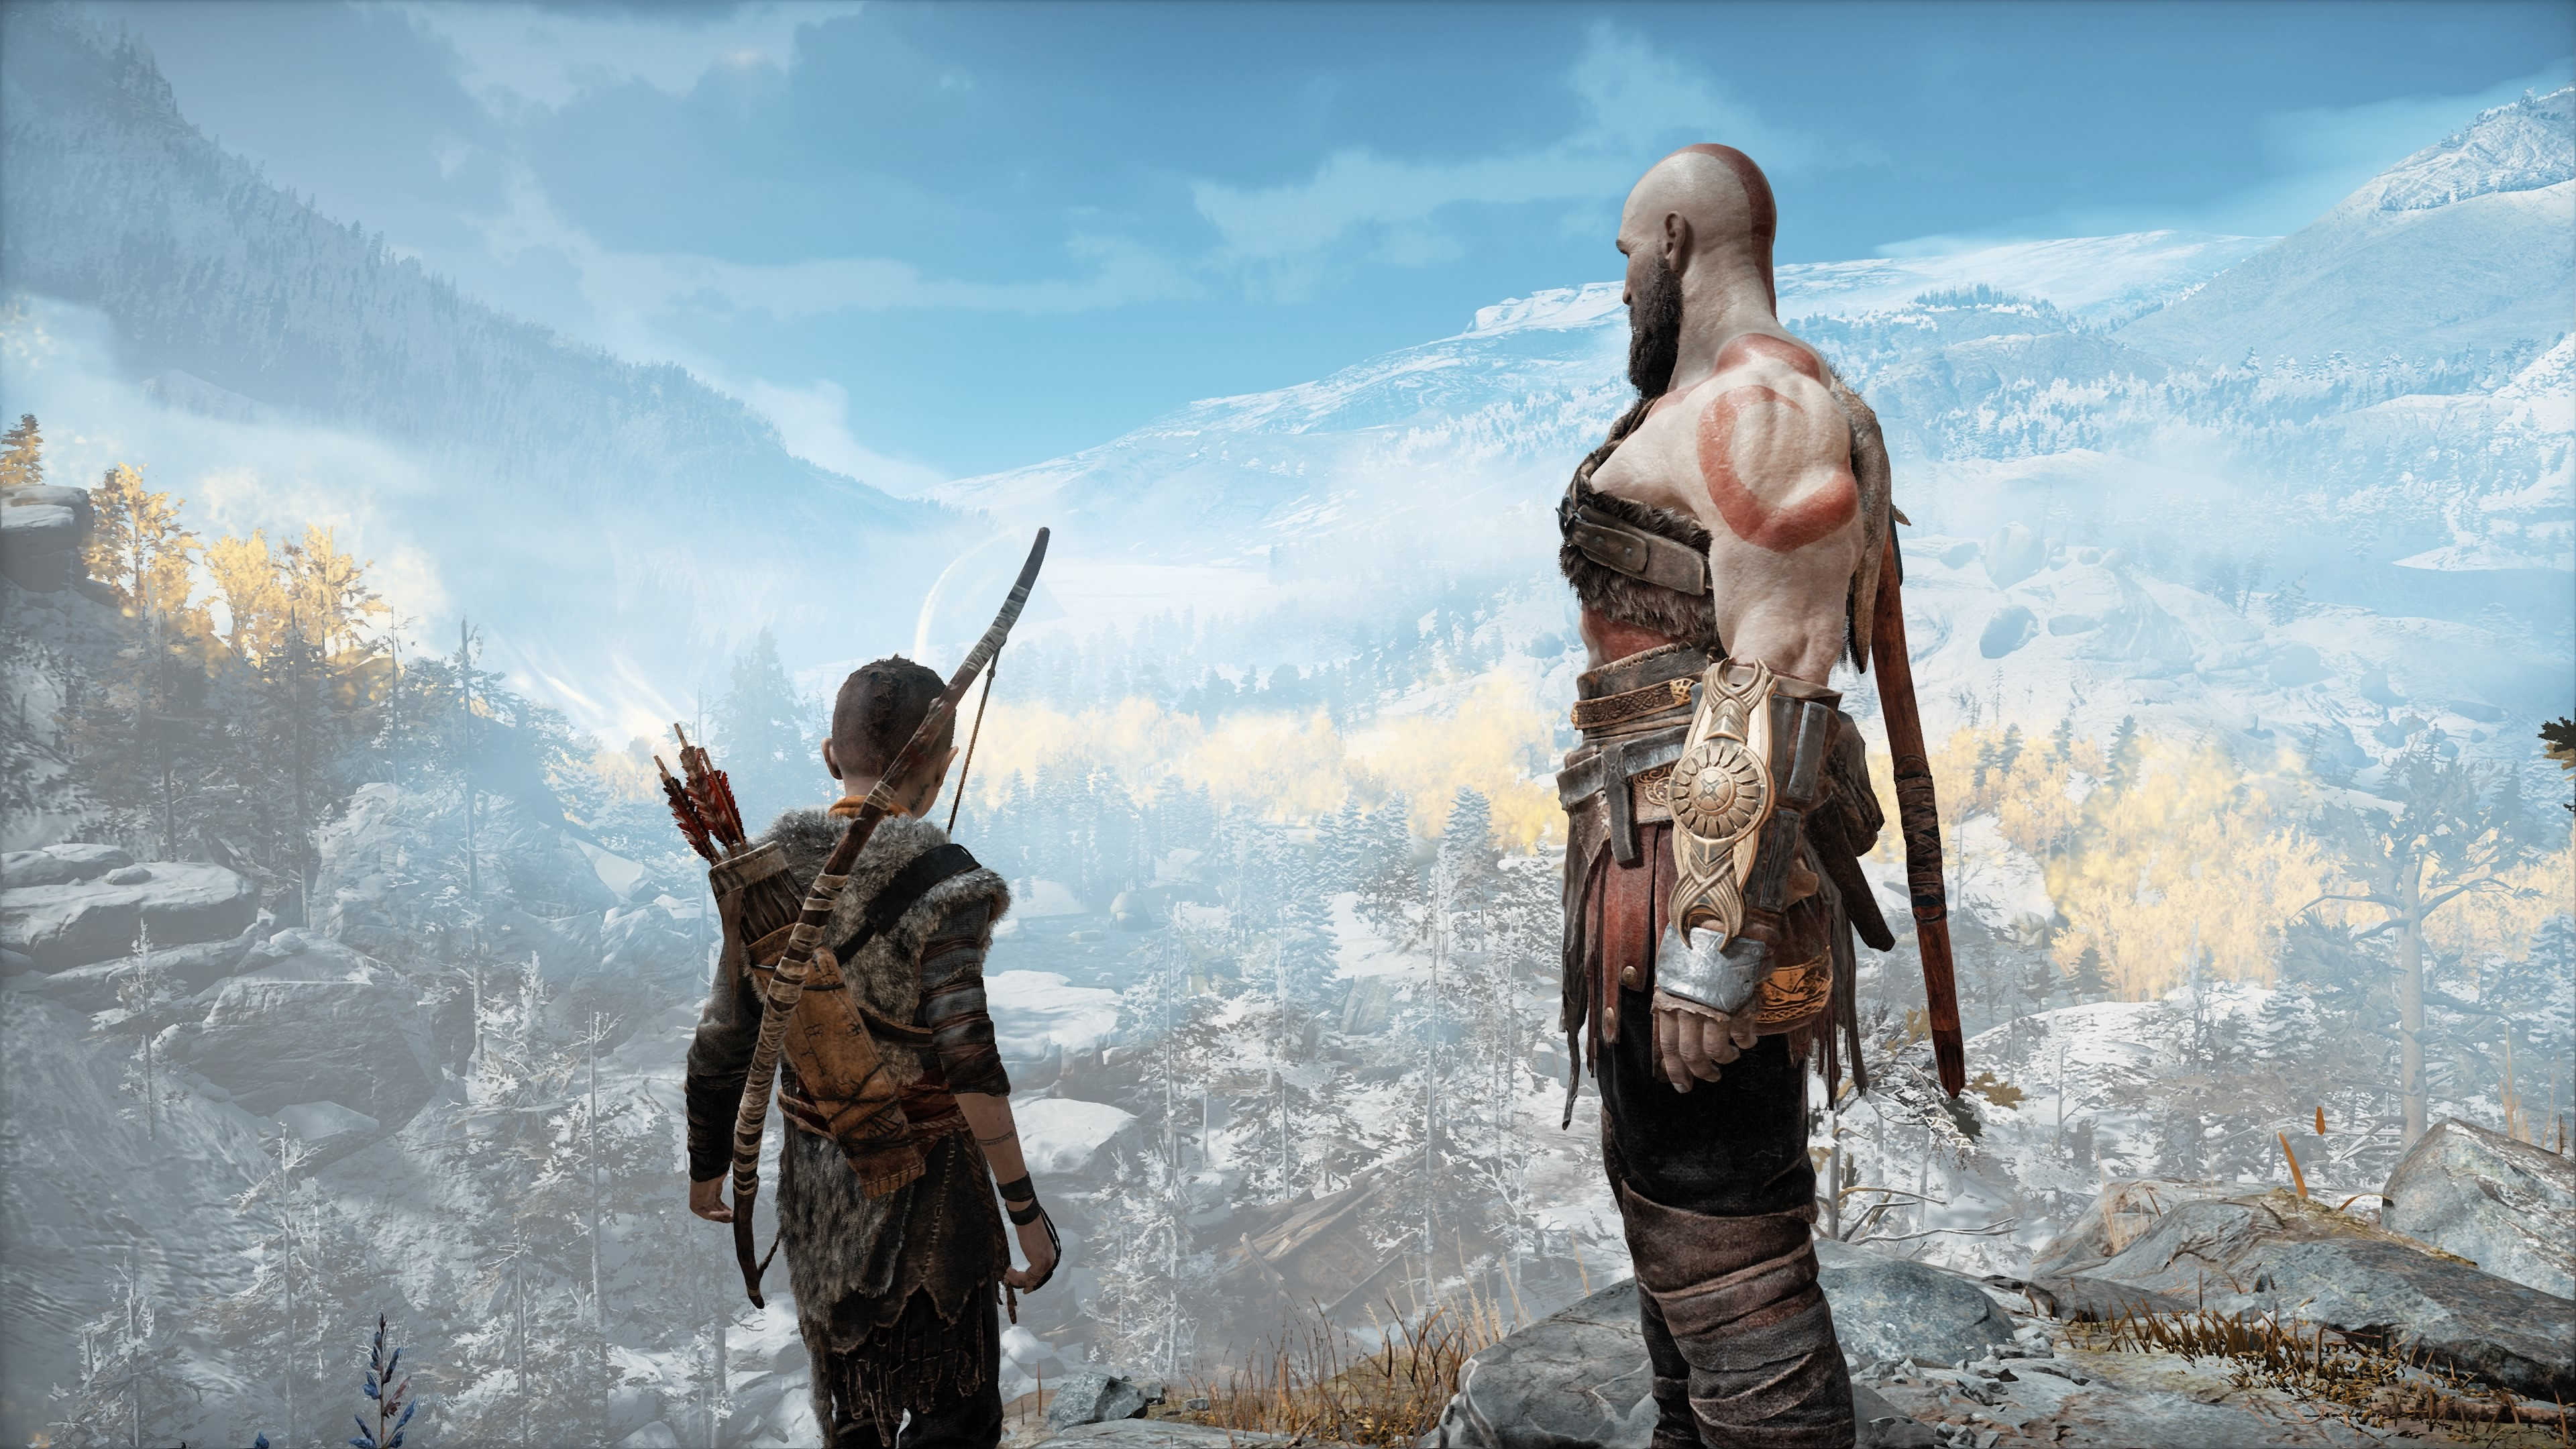 God Of War Wallpaper 4k For Android